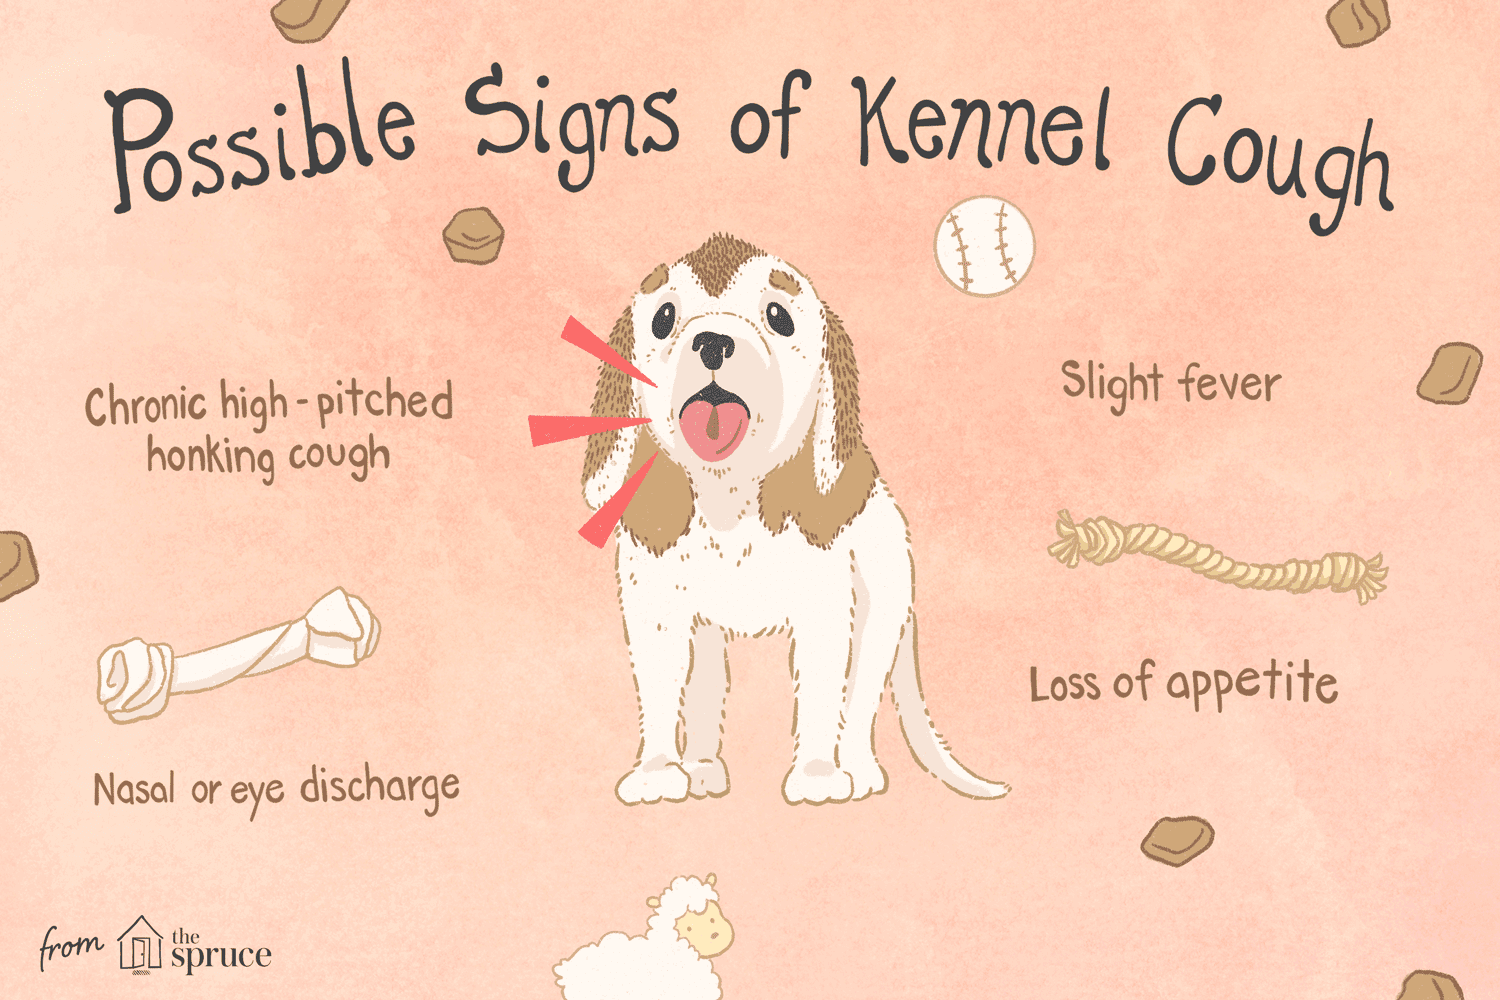 Kennel cough in dogs illustration